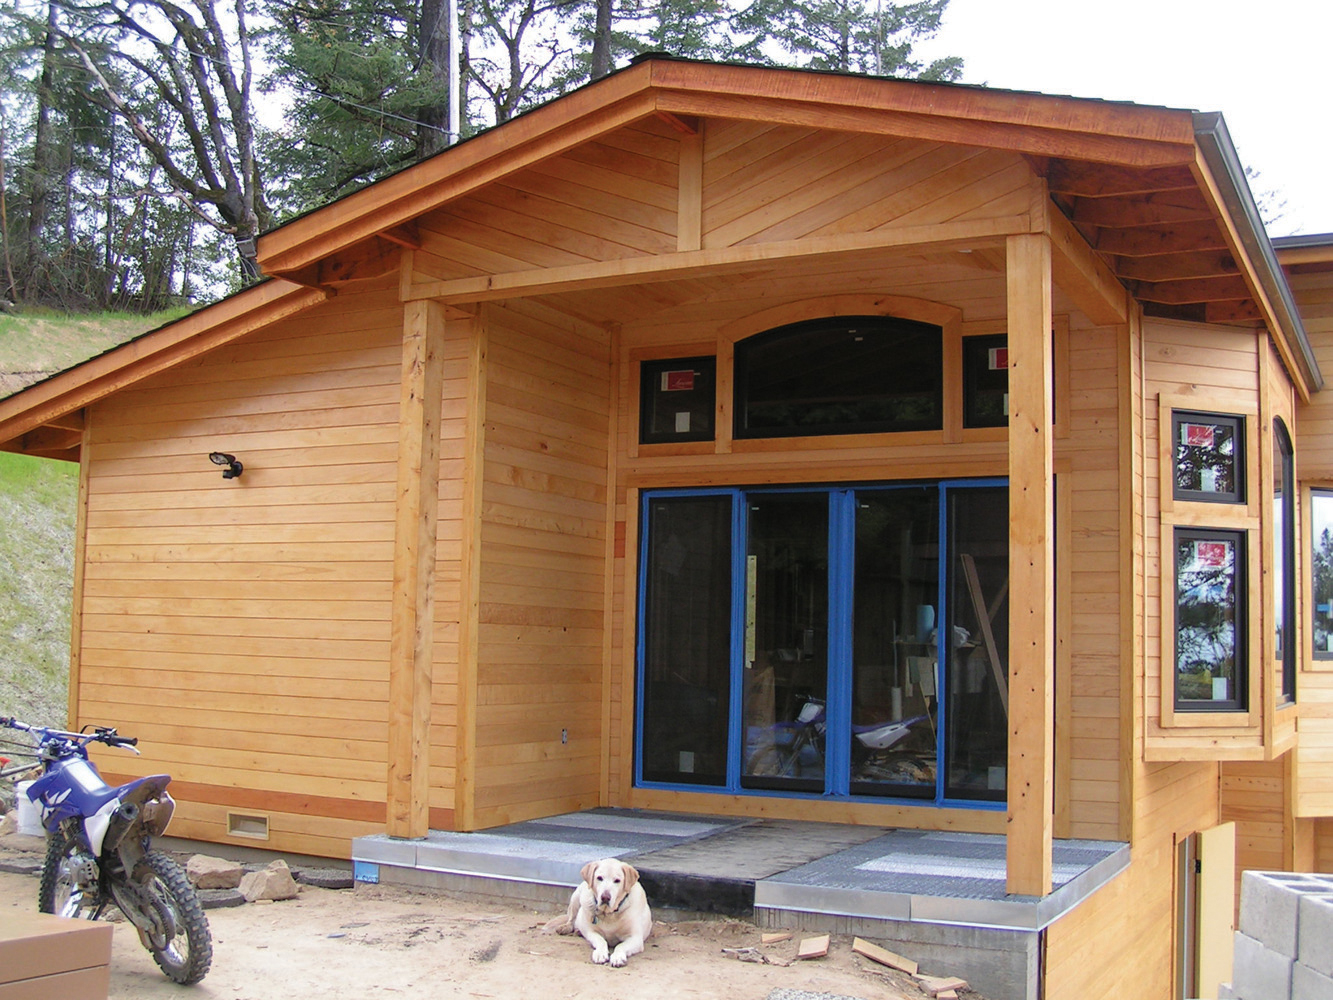 Startling Groove Tongue Groove Siding Exterior Siding Port Orford Cedar Tongue Port Orford Cedar Tongue Groove Siding Boards Tongue Groove Siding Price houzz-02 Tongue And Groove Siding